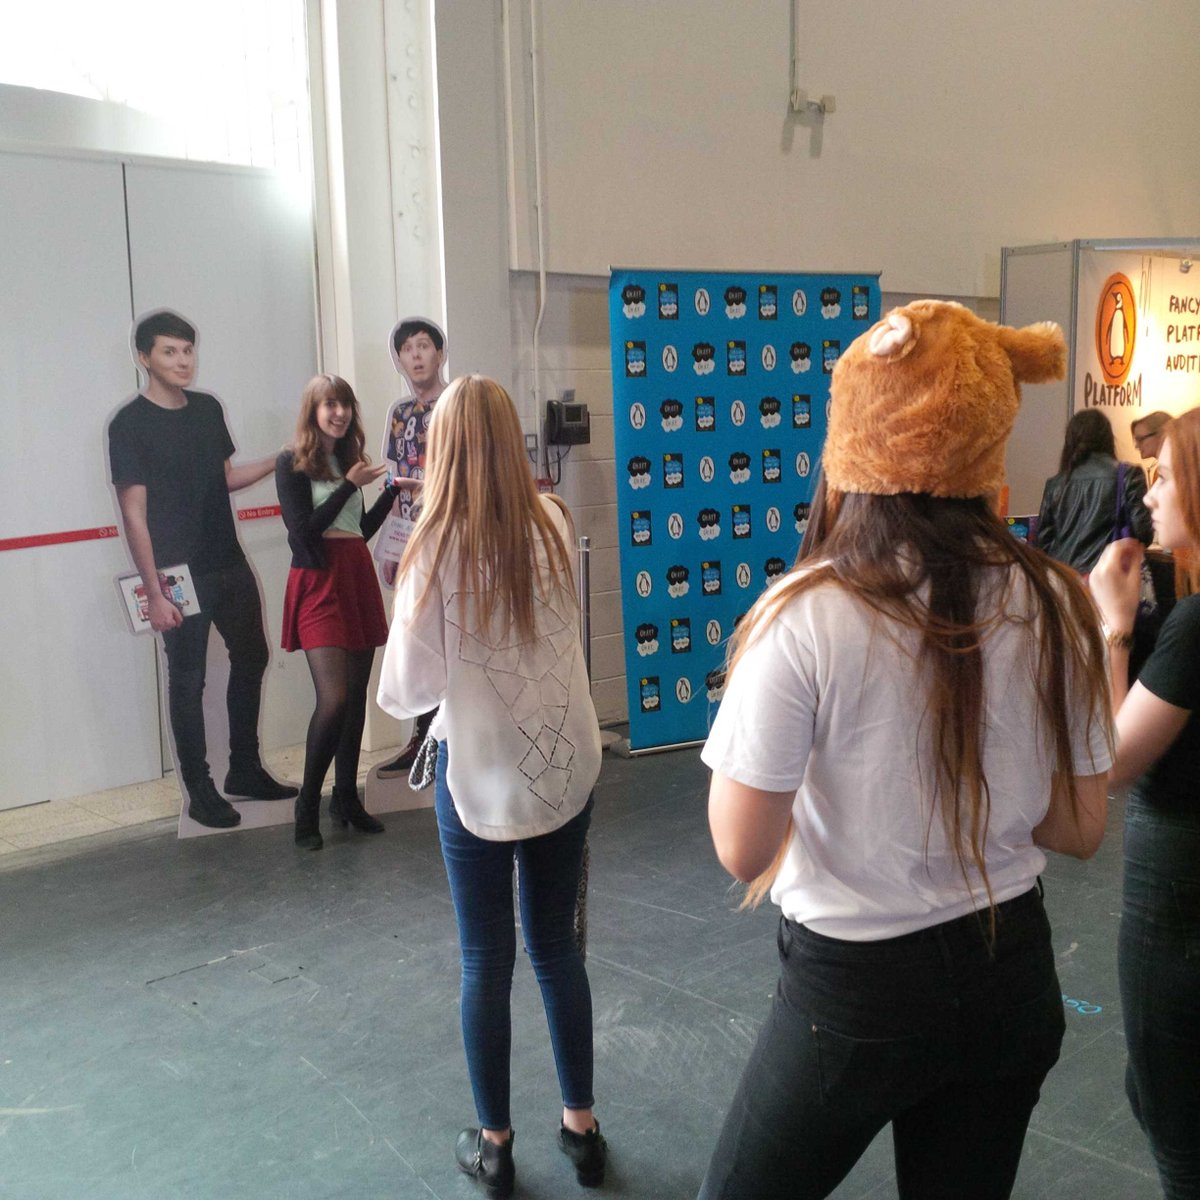 A queue has formed to meet and greet cardboard cutouts of Dan and Phil @summerinthecity #sitc2015 http://t.co/sXBd3TTUWm